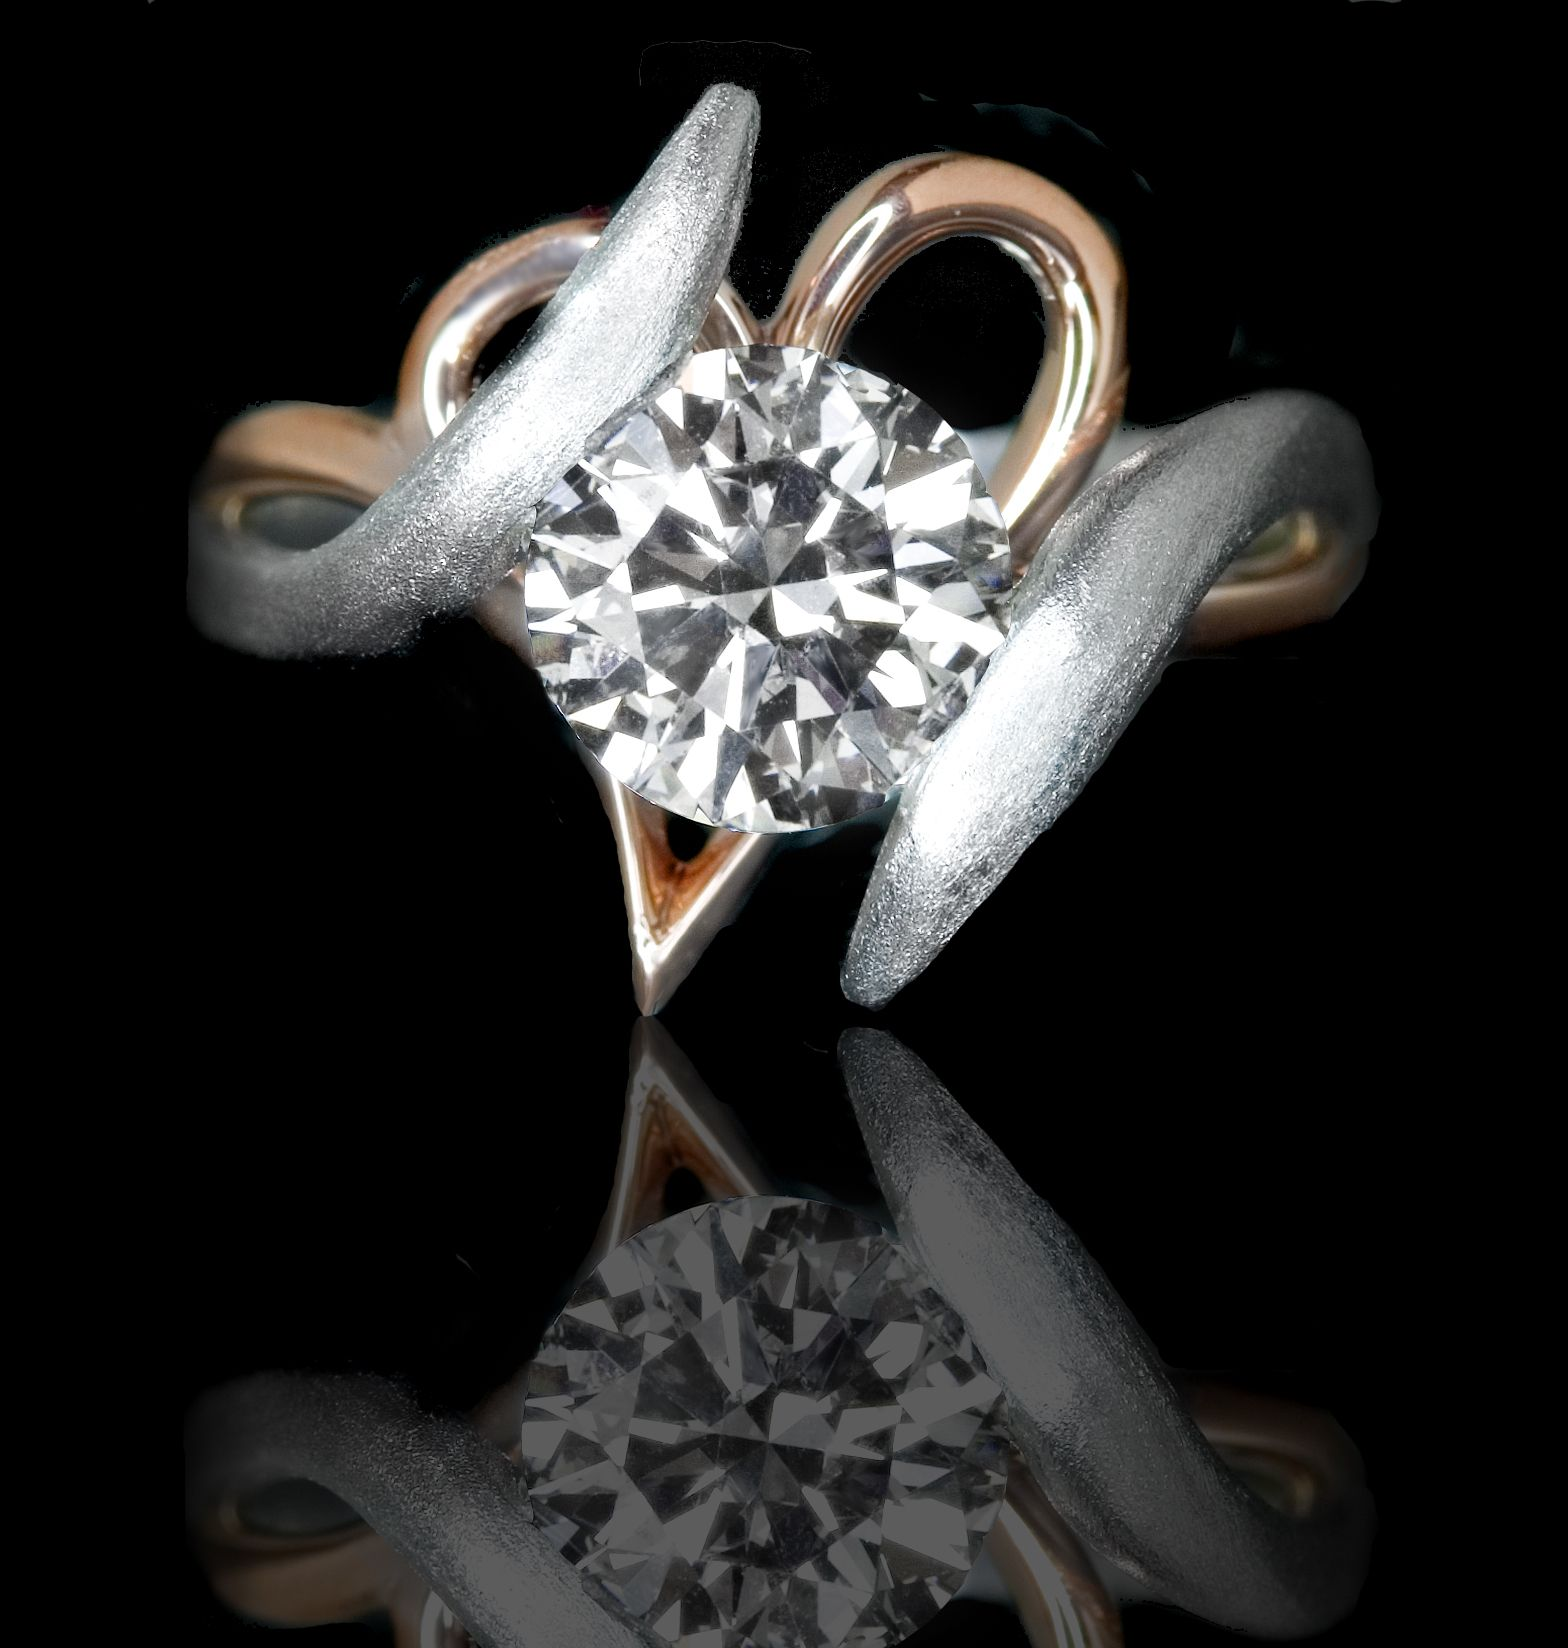 jolie diamond set edward rings engagement s wedding with elegant mirell la unique band titanium tension ring amp of